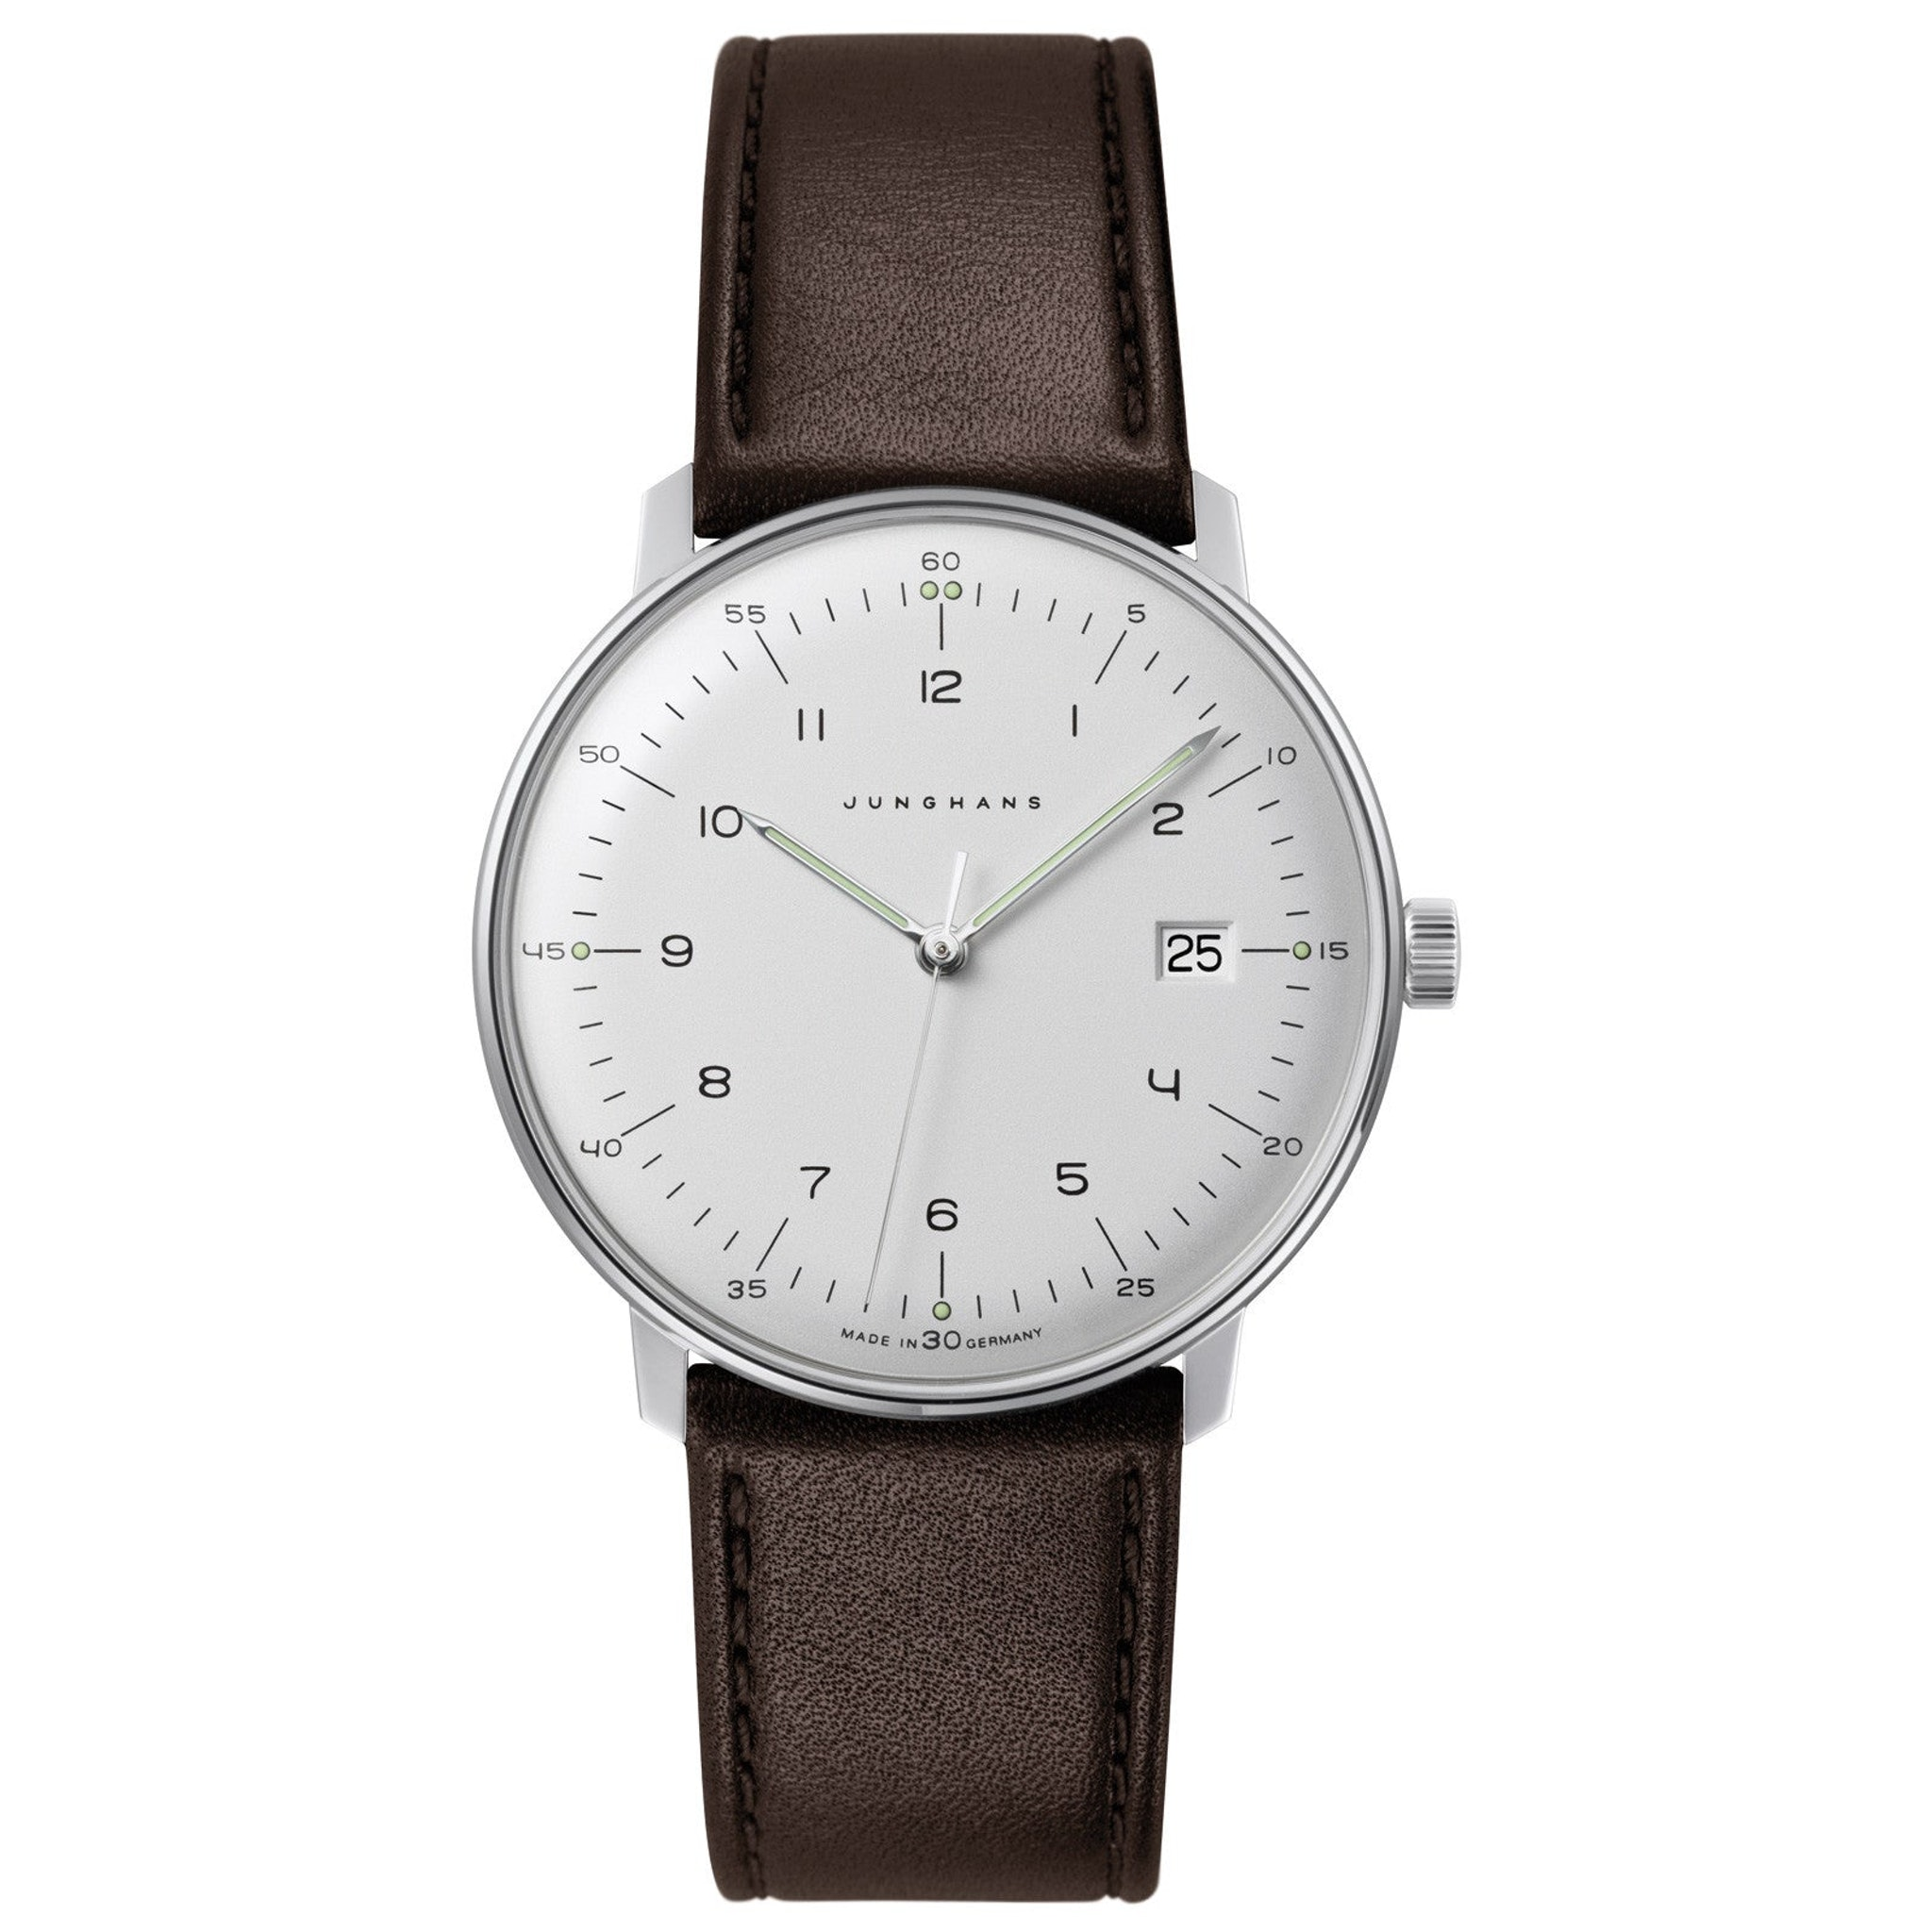 Max Bill 041/4461.00 Quartz watch by Junghans